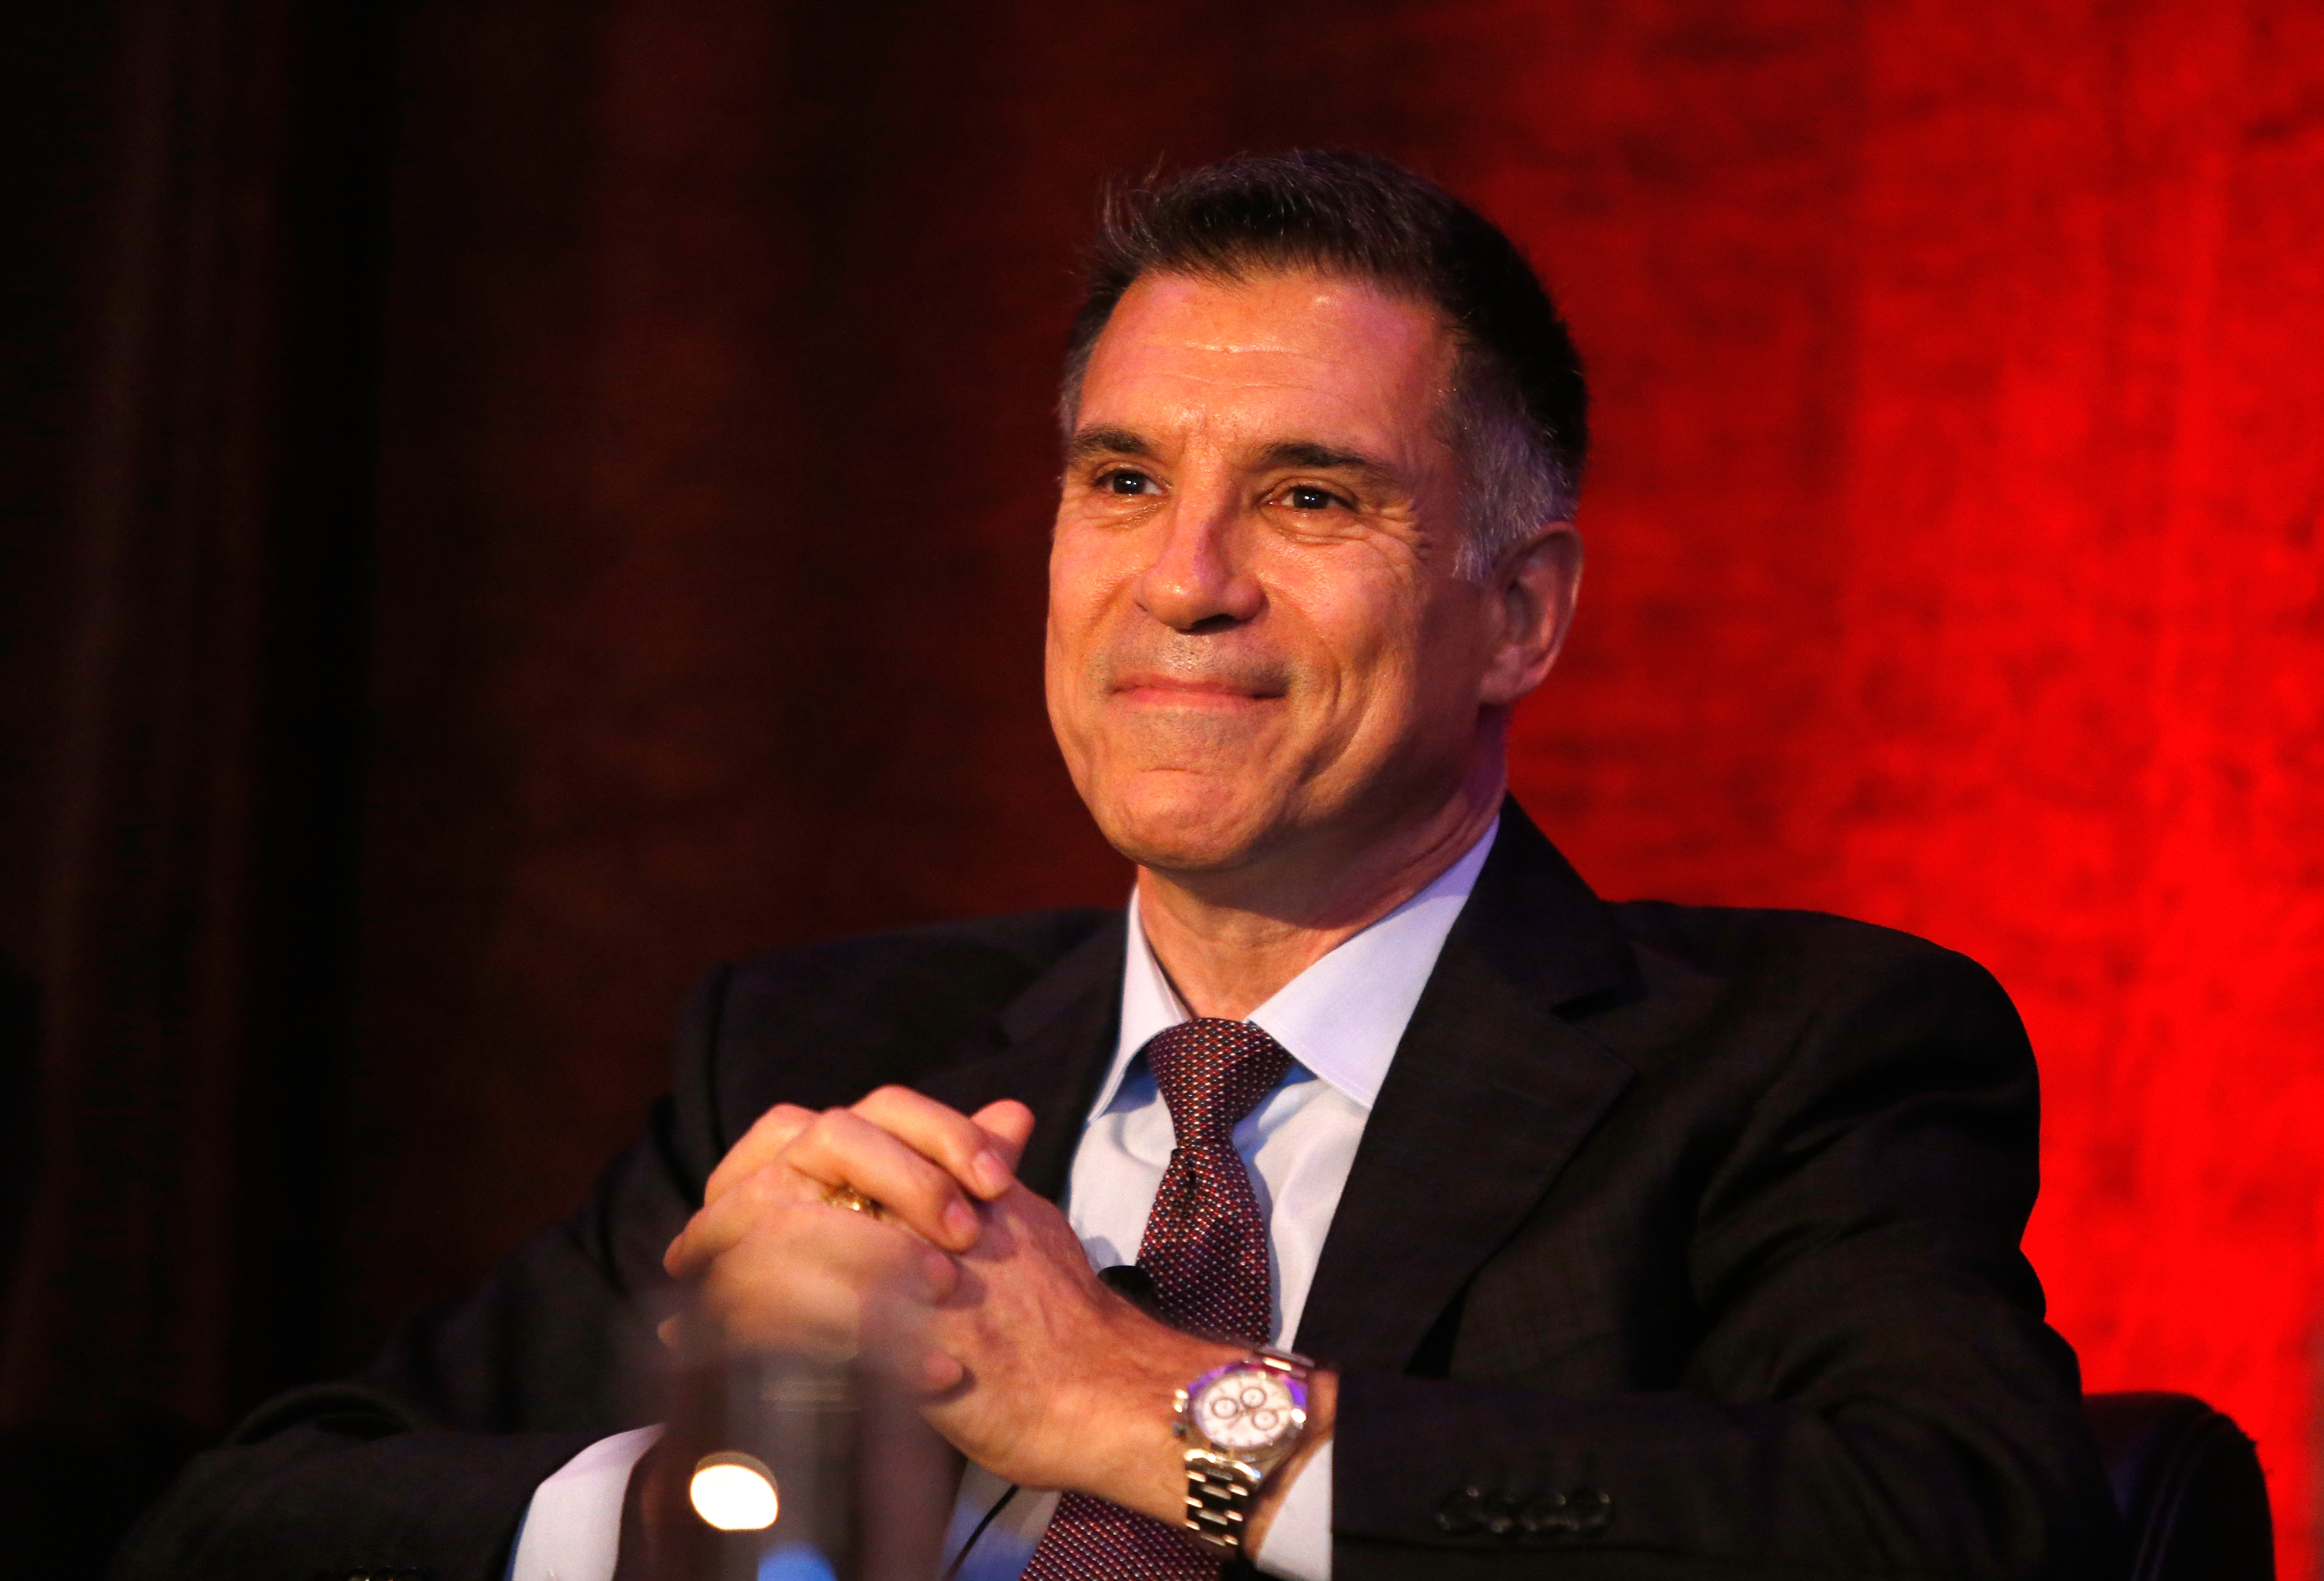 Chief Executive Officer and Owner of the Florida Panthers Vincent Viola attends the commissioner's luncheon at Ritz Carlton on June 26, 2015 in Ft. Lauderdale, Florida. (Photo by Eliot J. Schechter/NHLI via Getty Images)